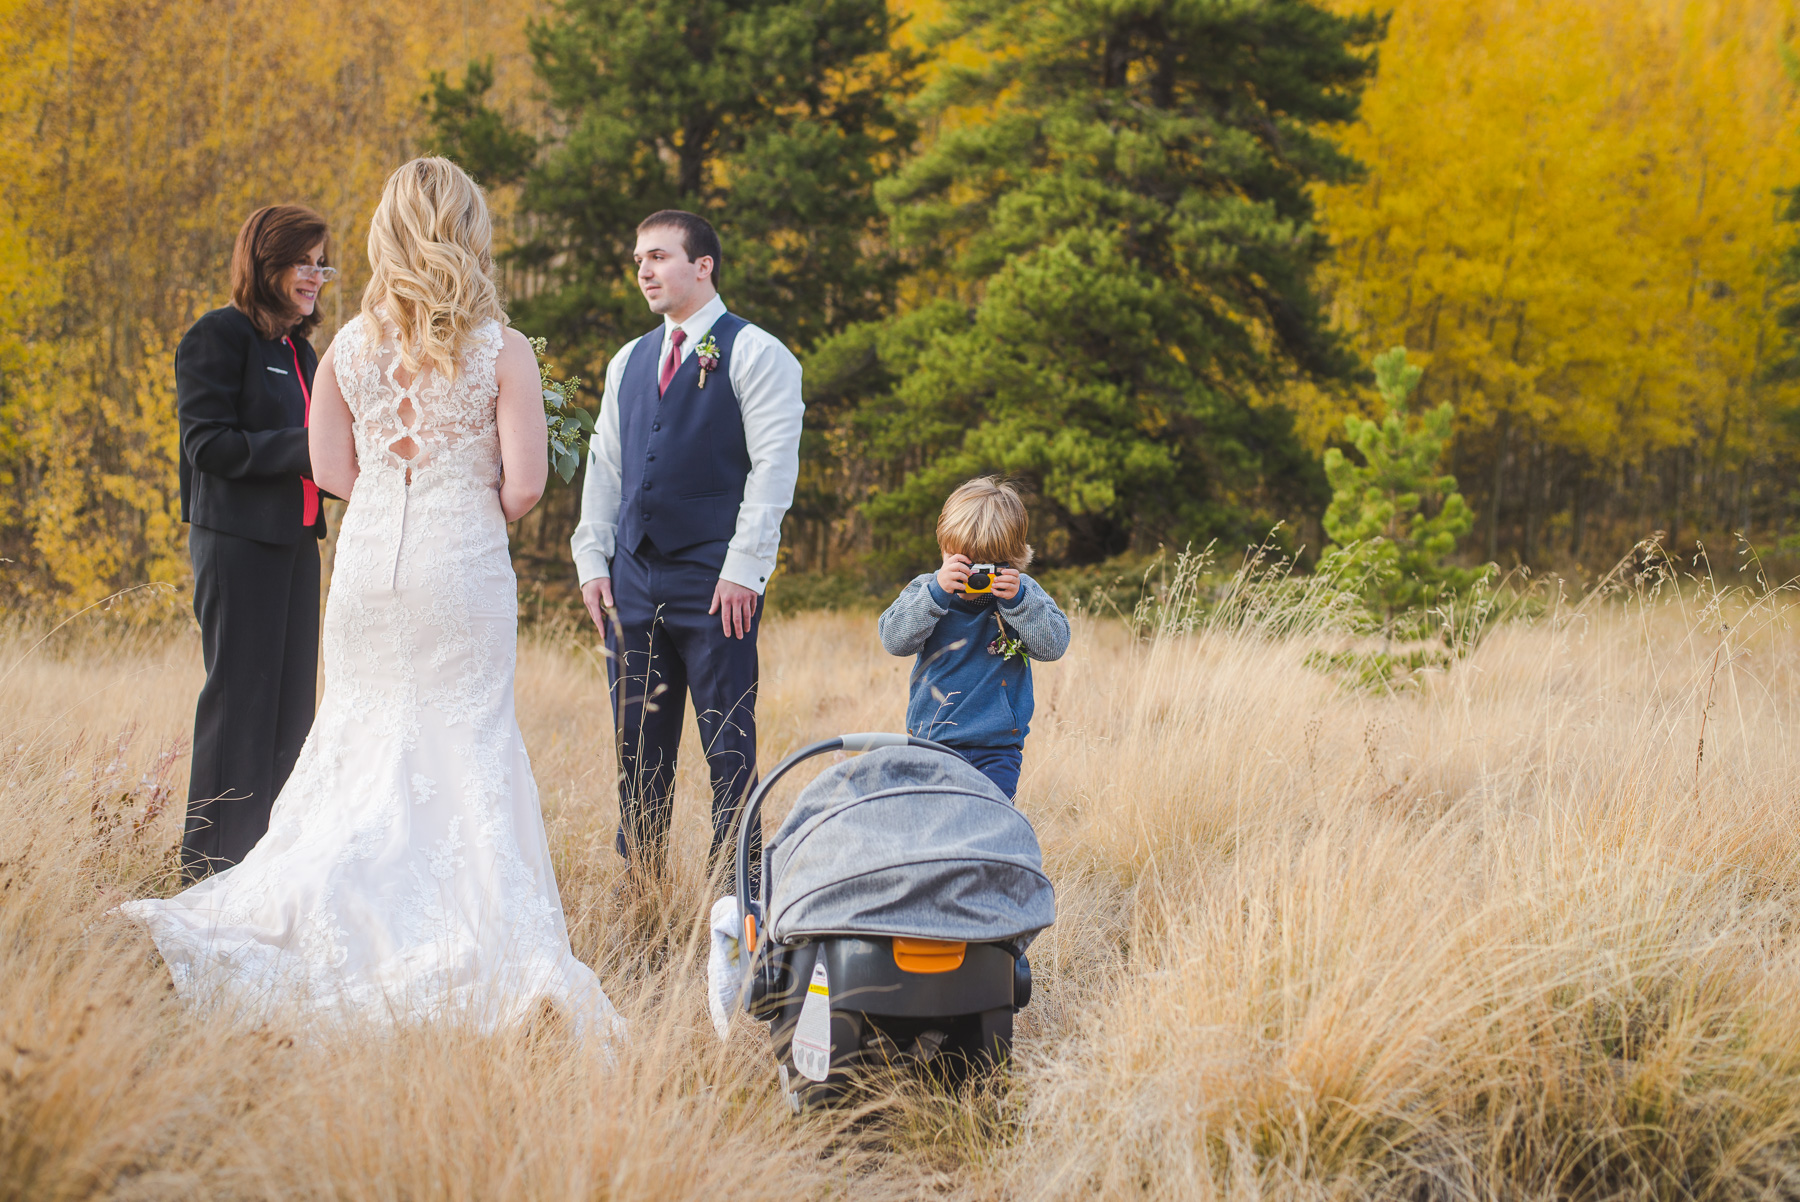 Autumn elopement in Breckenridge, Colorado | Older brother takes a photo of his baby brother in the carrier during mom and dad's wedding ceremony | Summit Mountain Weddings